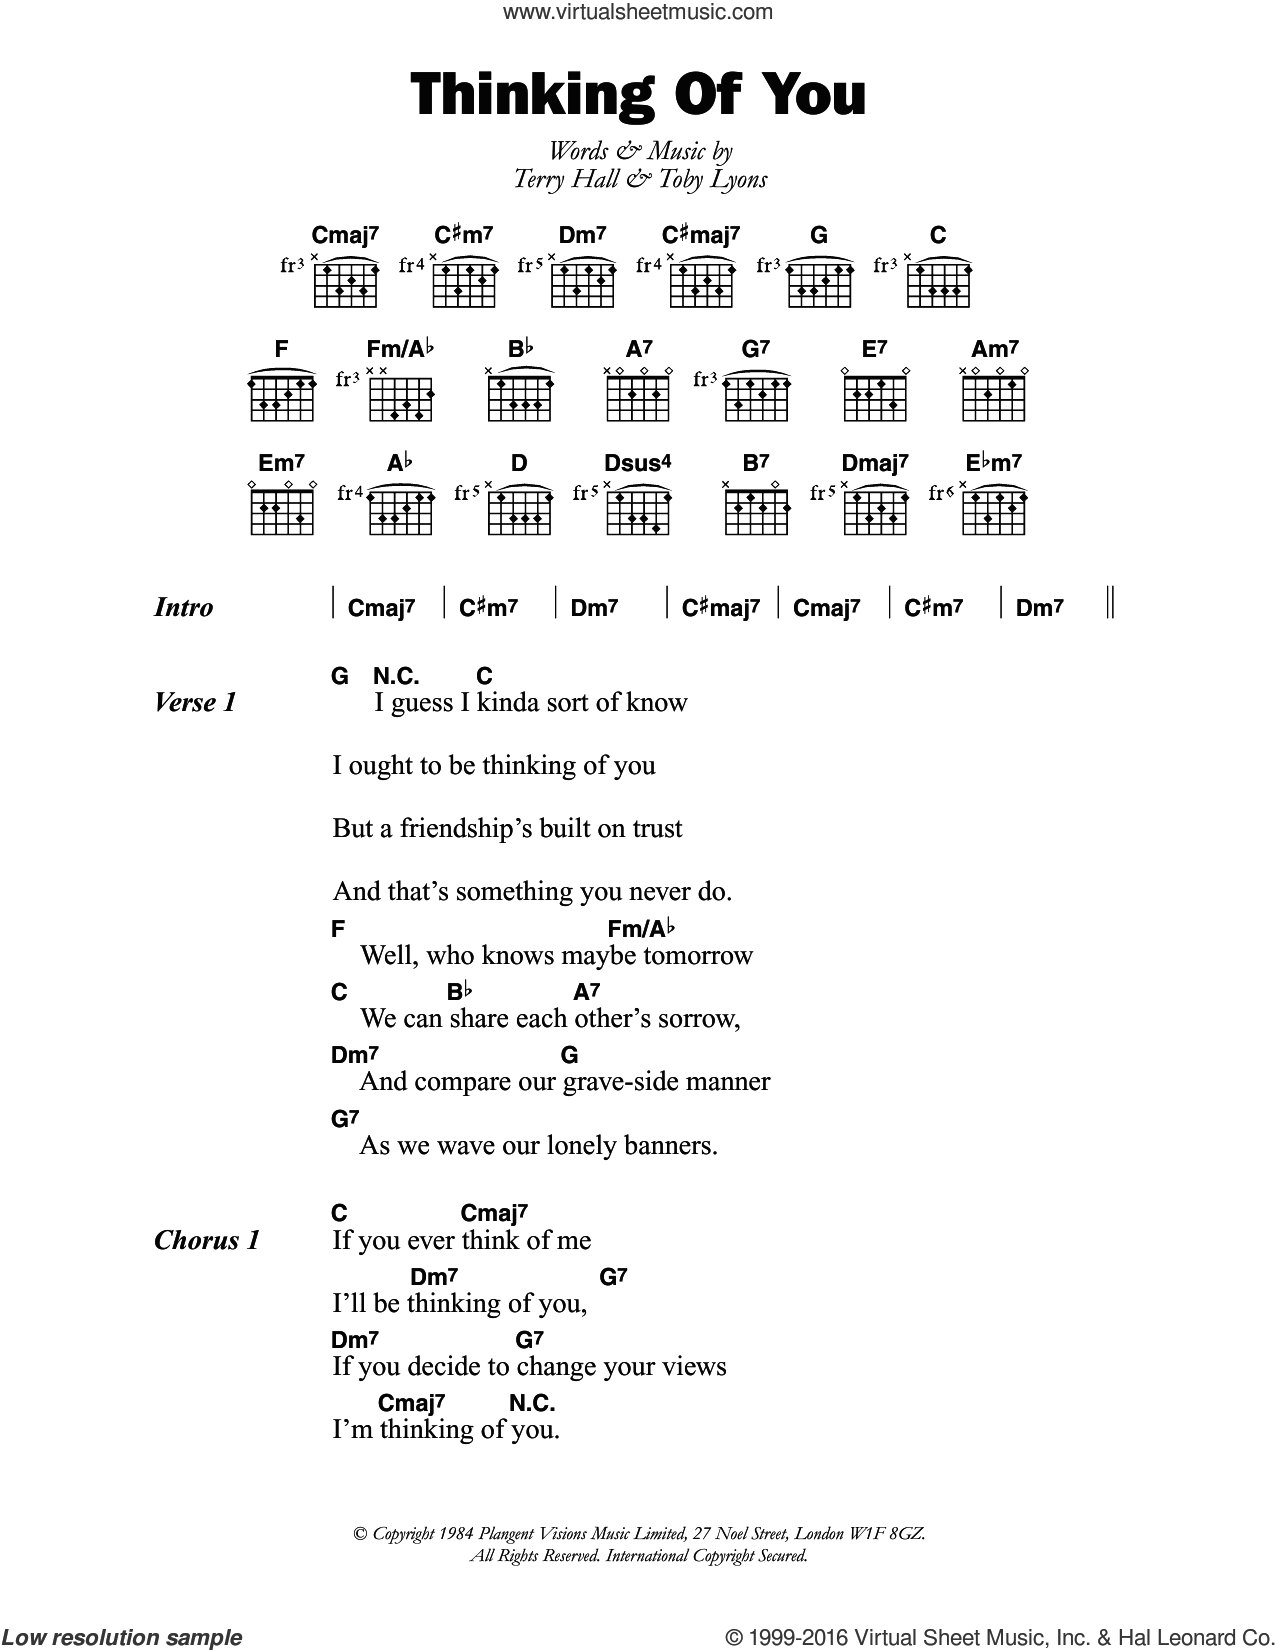 Thinking Of You sheet music for guitar (chords) by The Colourfield, Terry Hall and Toby Lyons, intermediate skill level